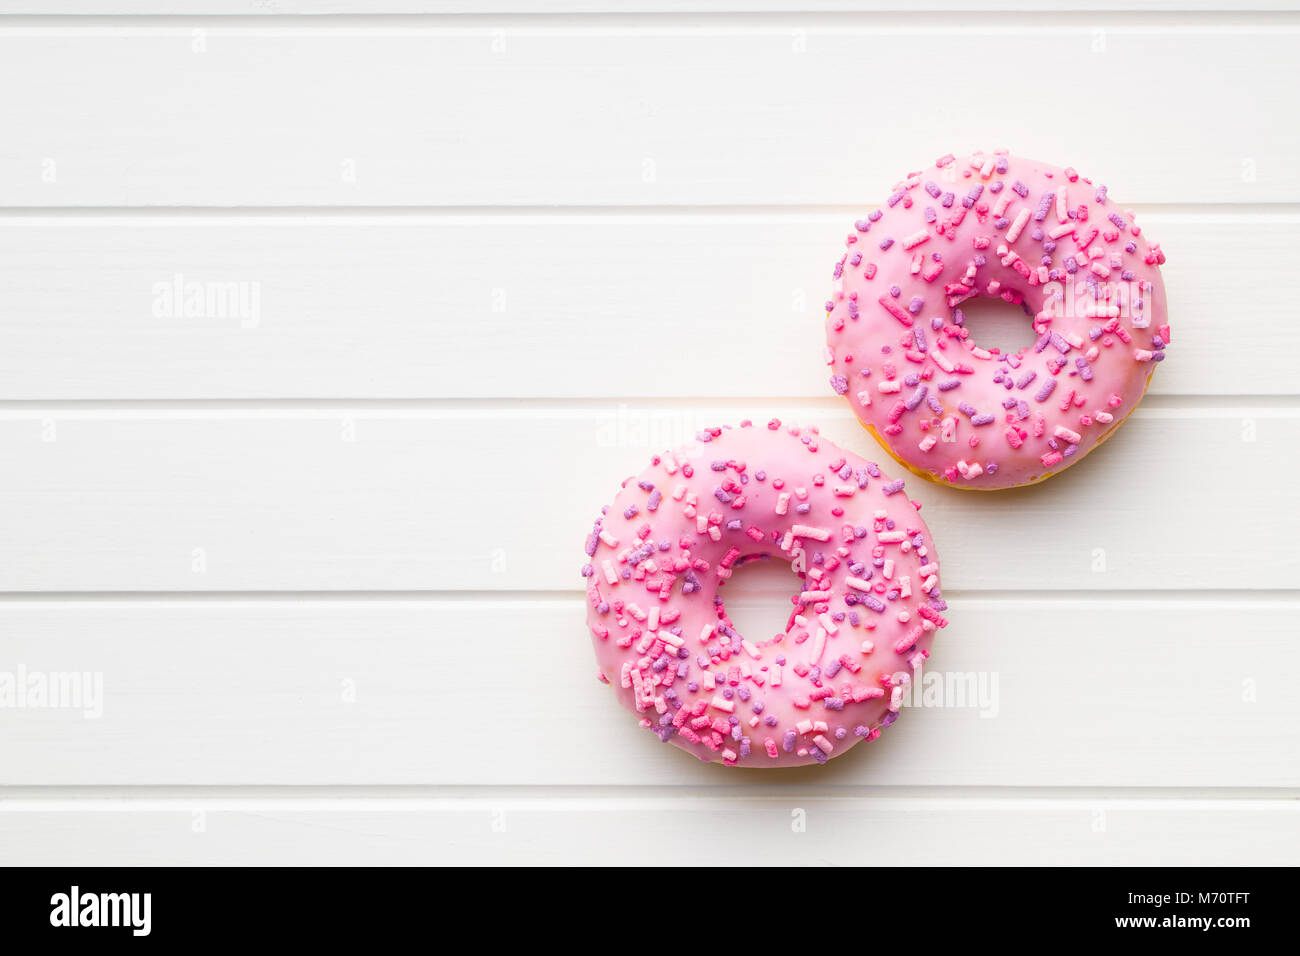 Two pink donuts on white table. - Stock Image